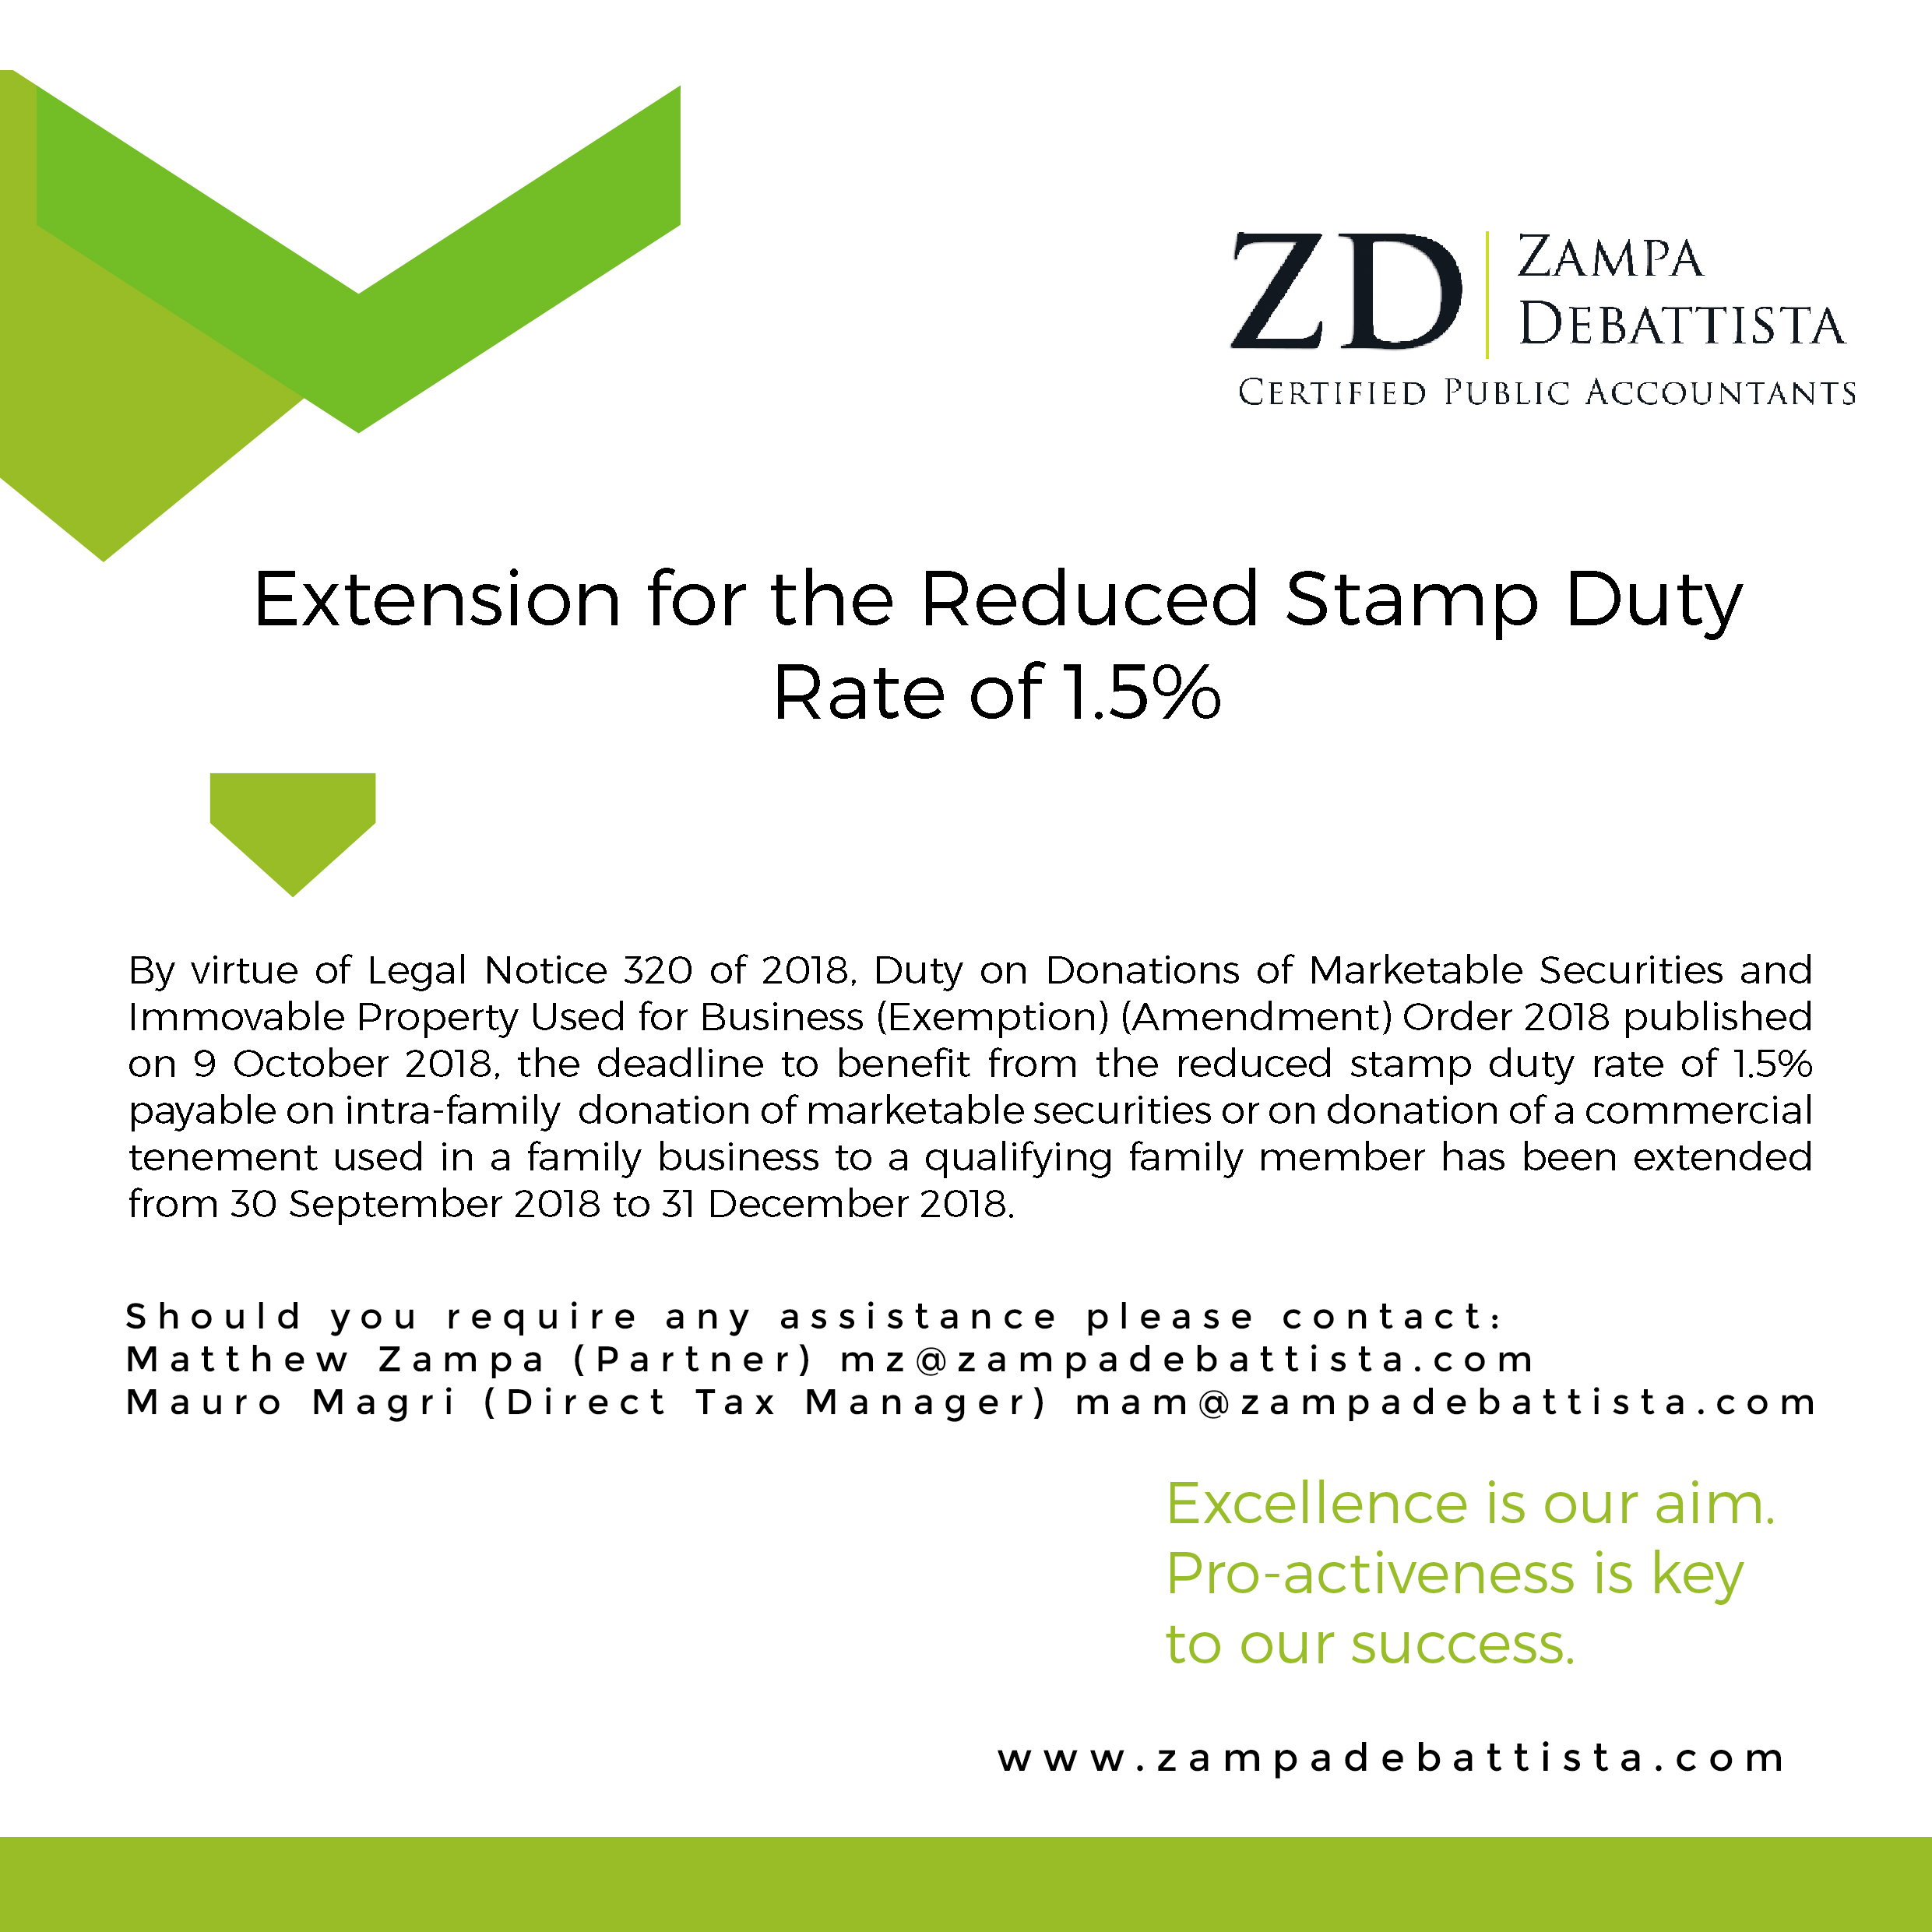 Extension for the Reduced Stamp Duty Rate of 1.5%